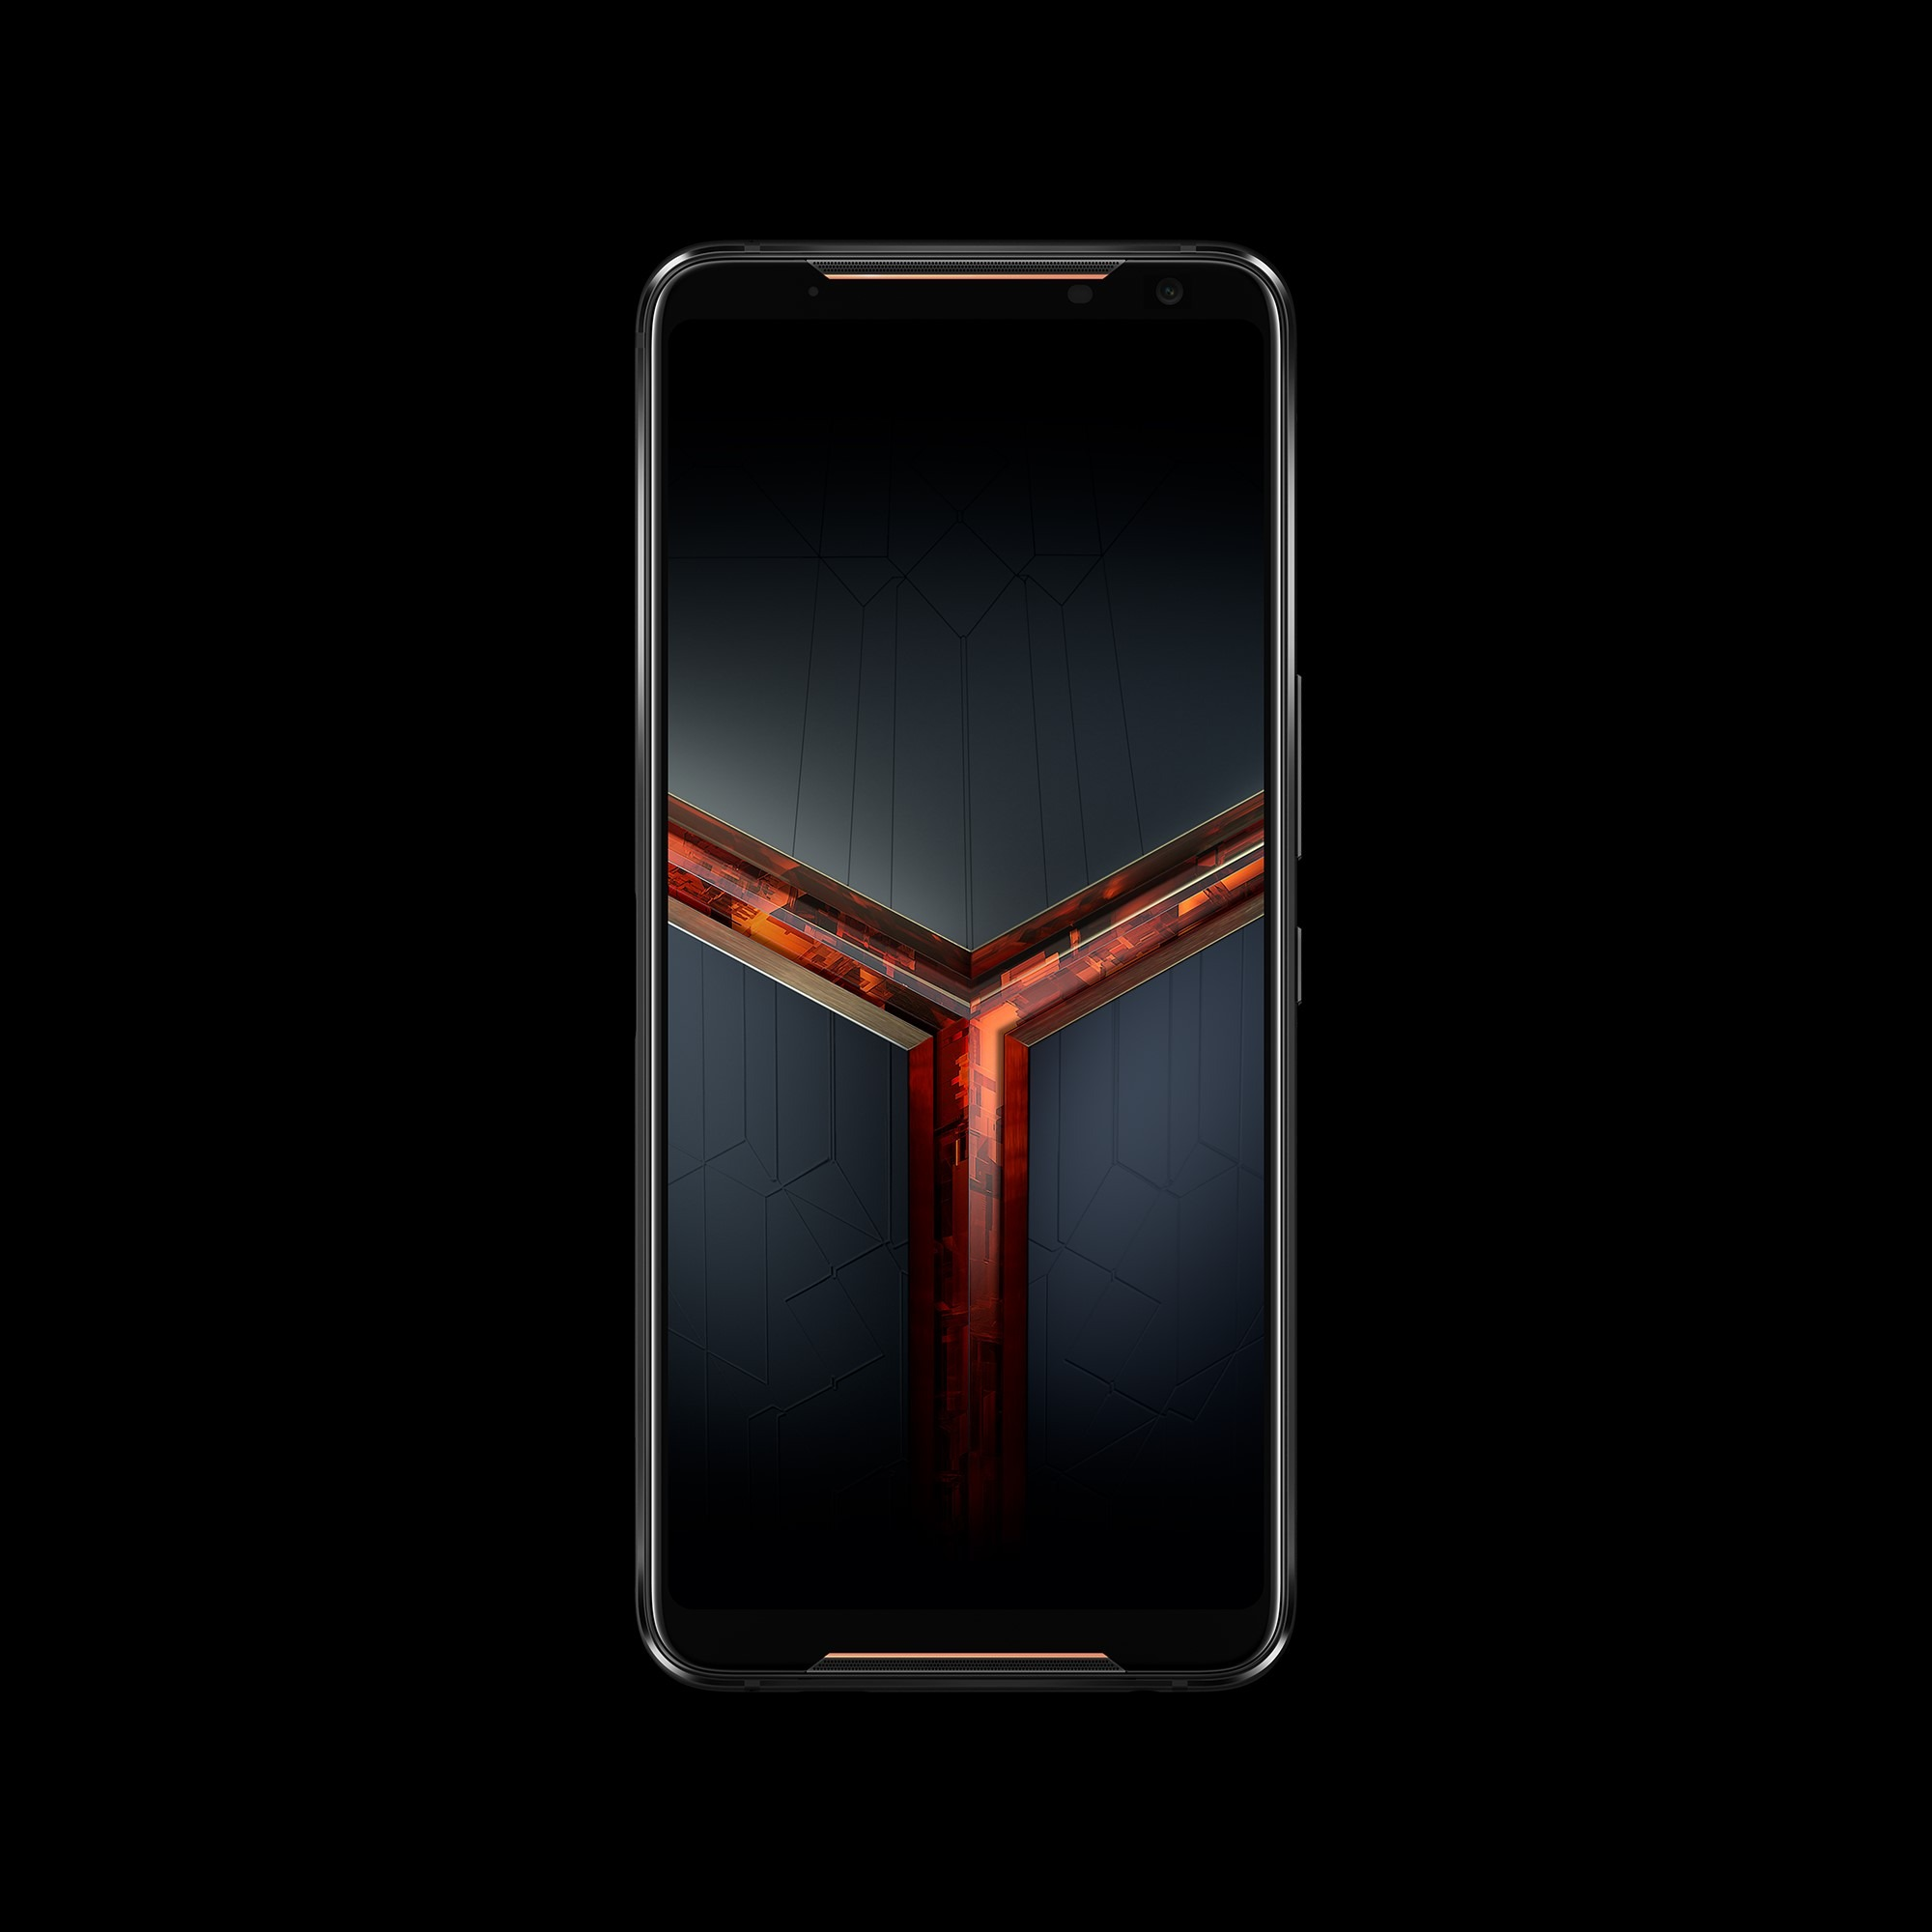 Asus ROG Phone 2 launched in India, check price and specs here